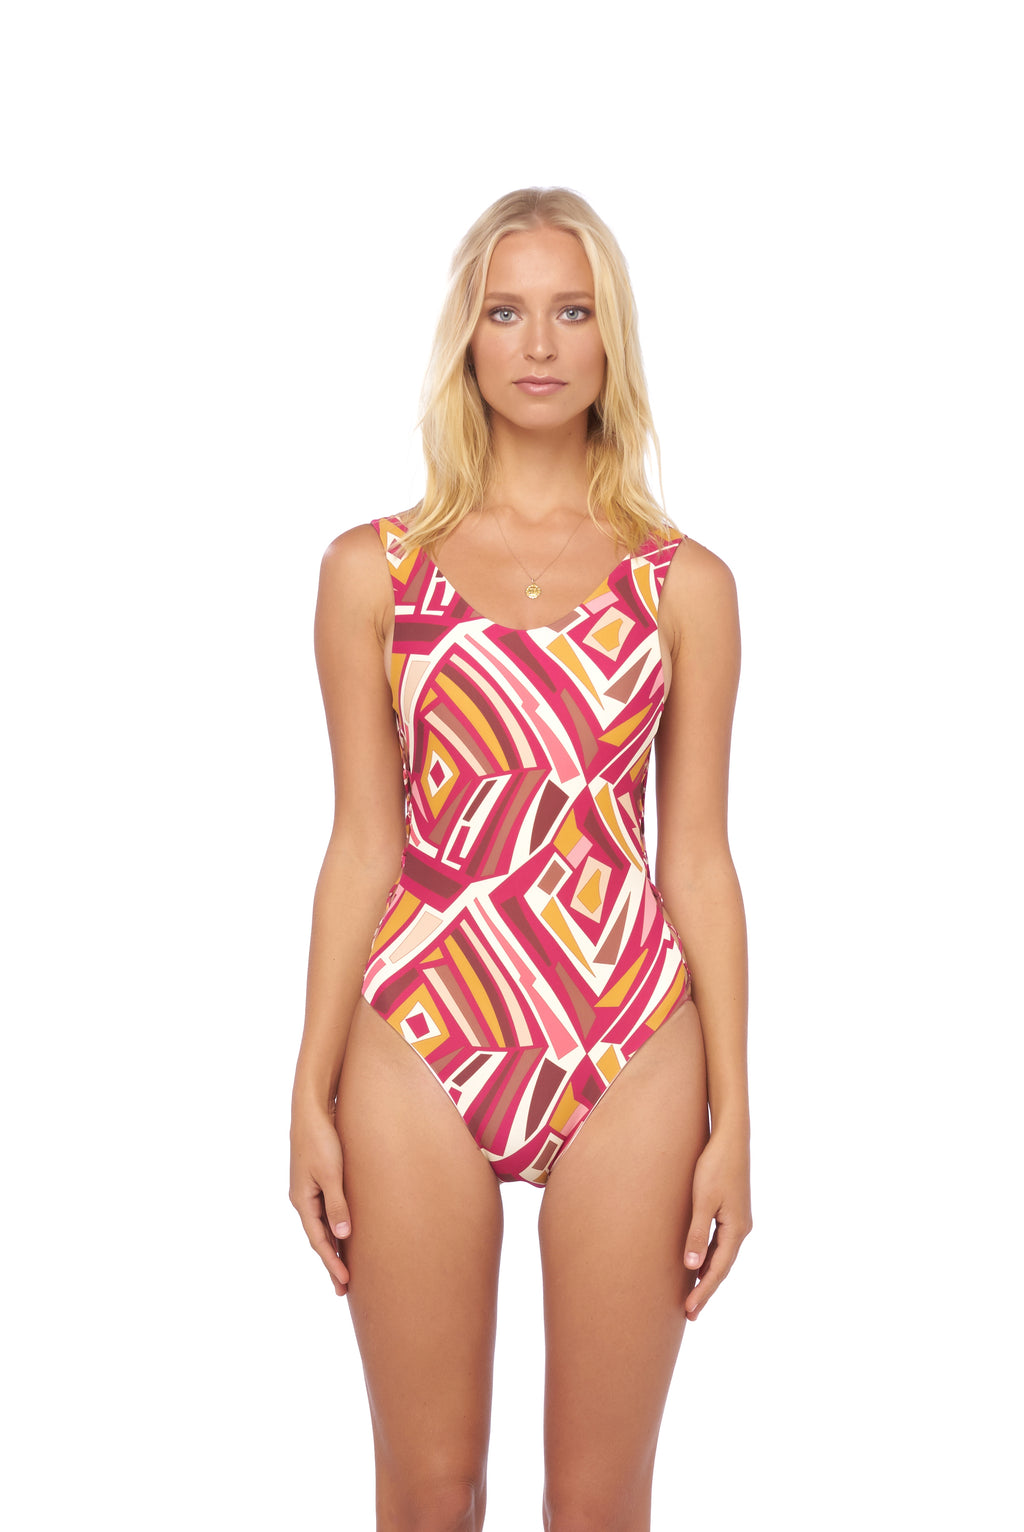 Storm Swimwear - Playa Del Amor - One Piece Swimsuit in Kaleidescope print